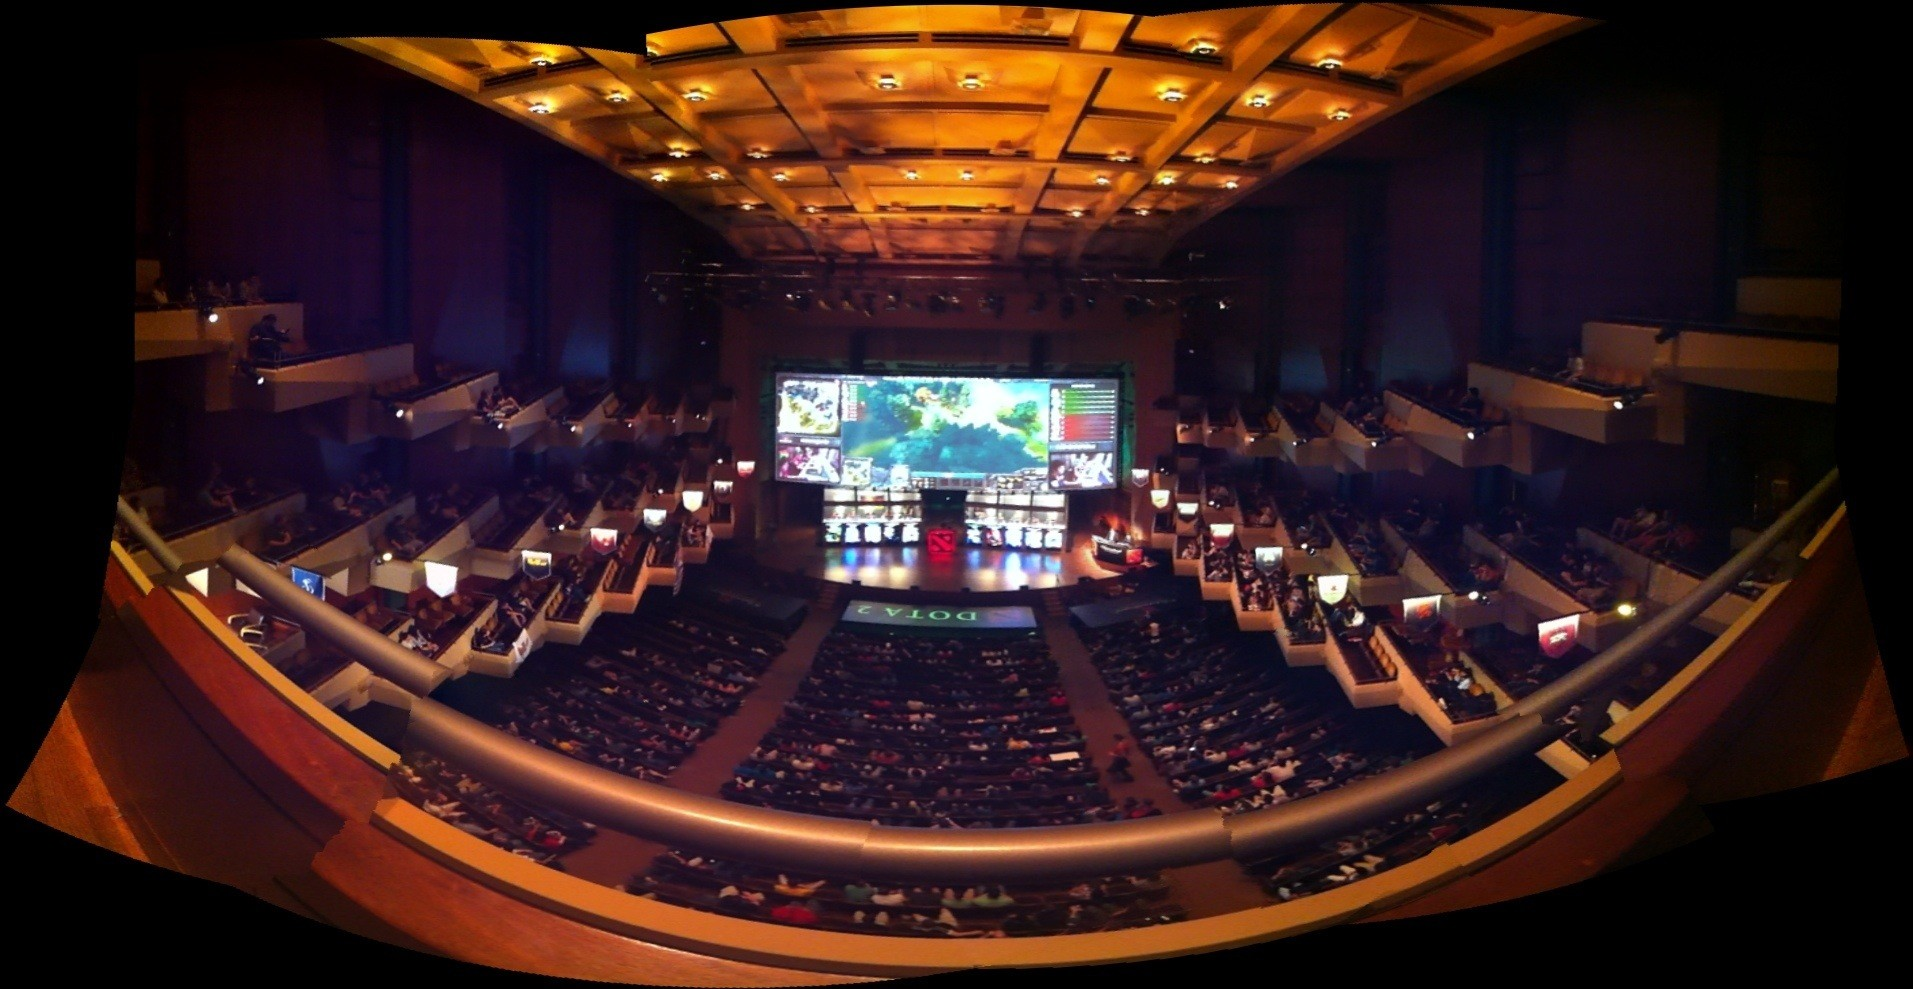 The International 5 Stage